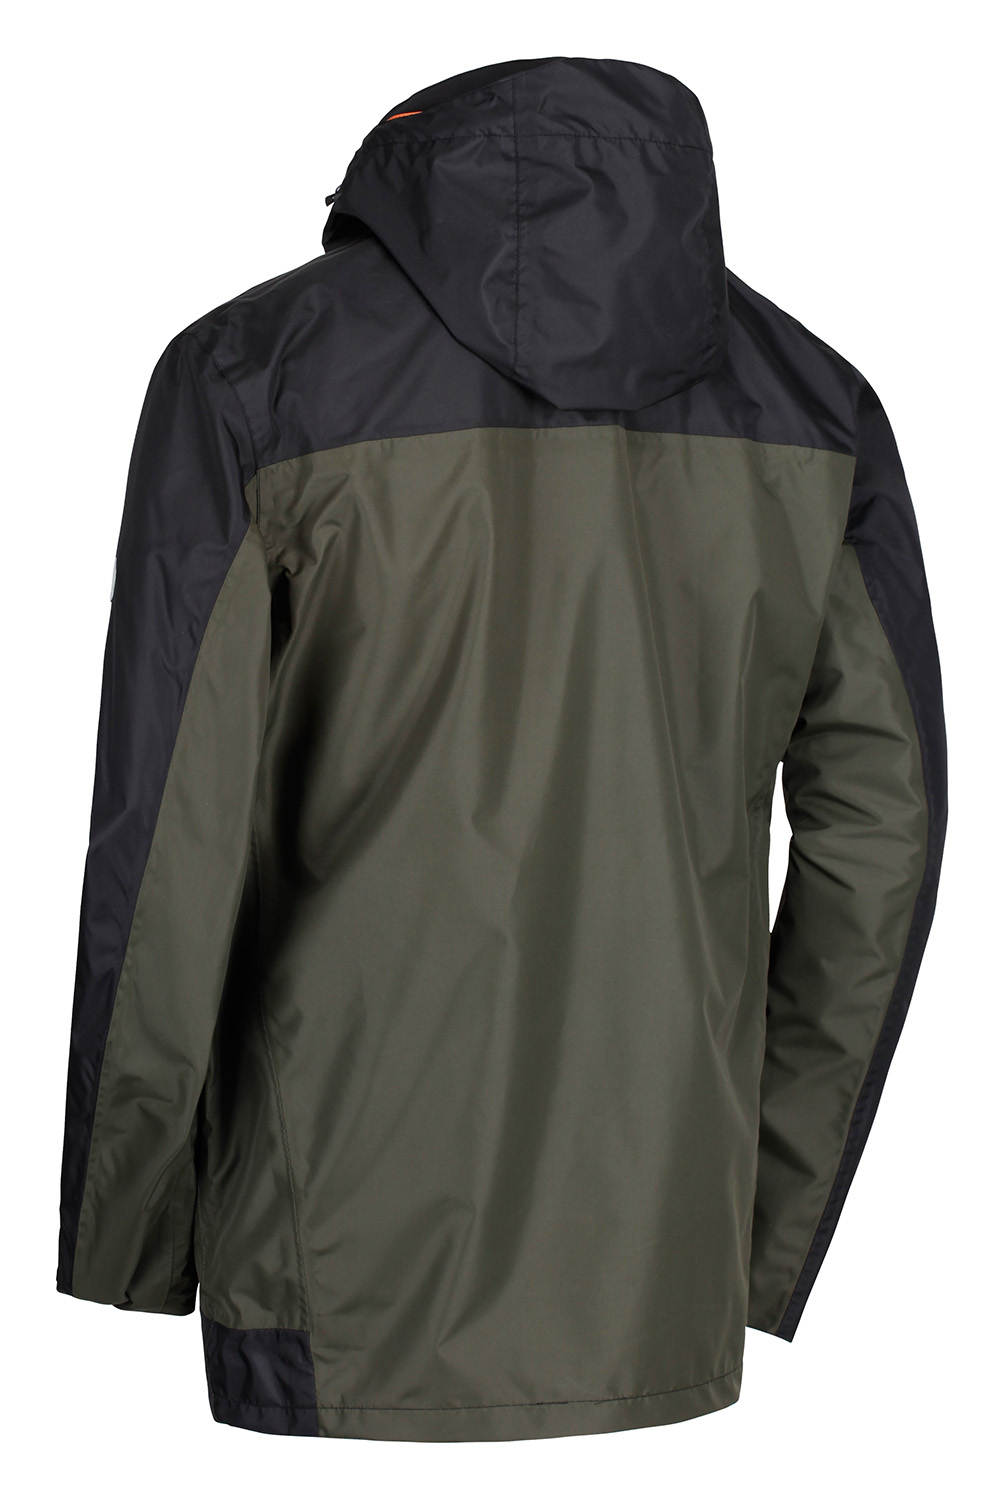 Regatta-Mens-Calderdale-II-Jacket-Waterproof-Breathable-Isotex-5000-Hooded-Coat thumbnail 25